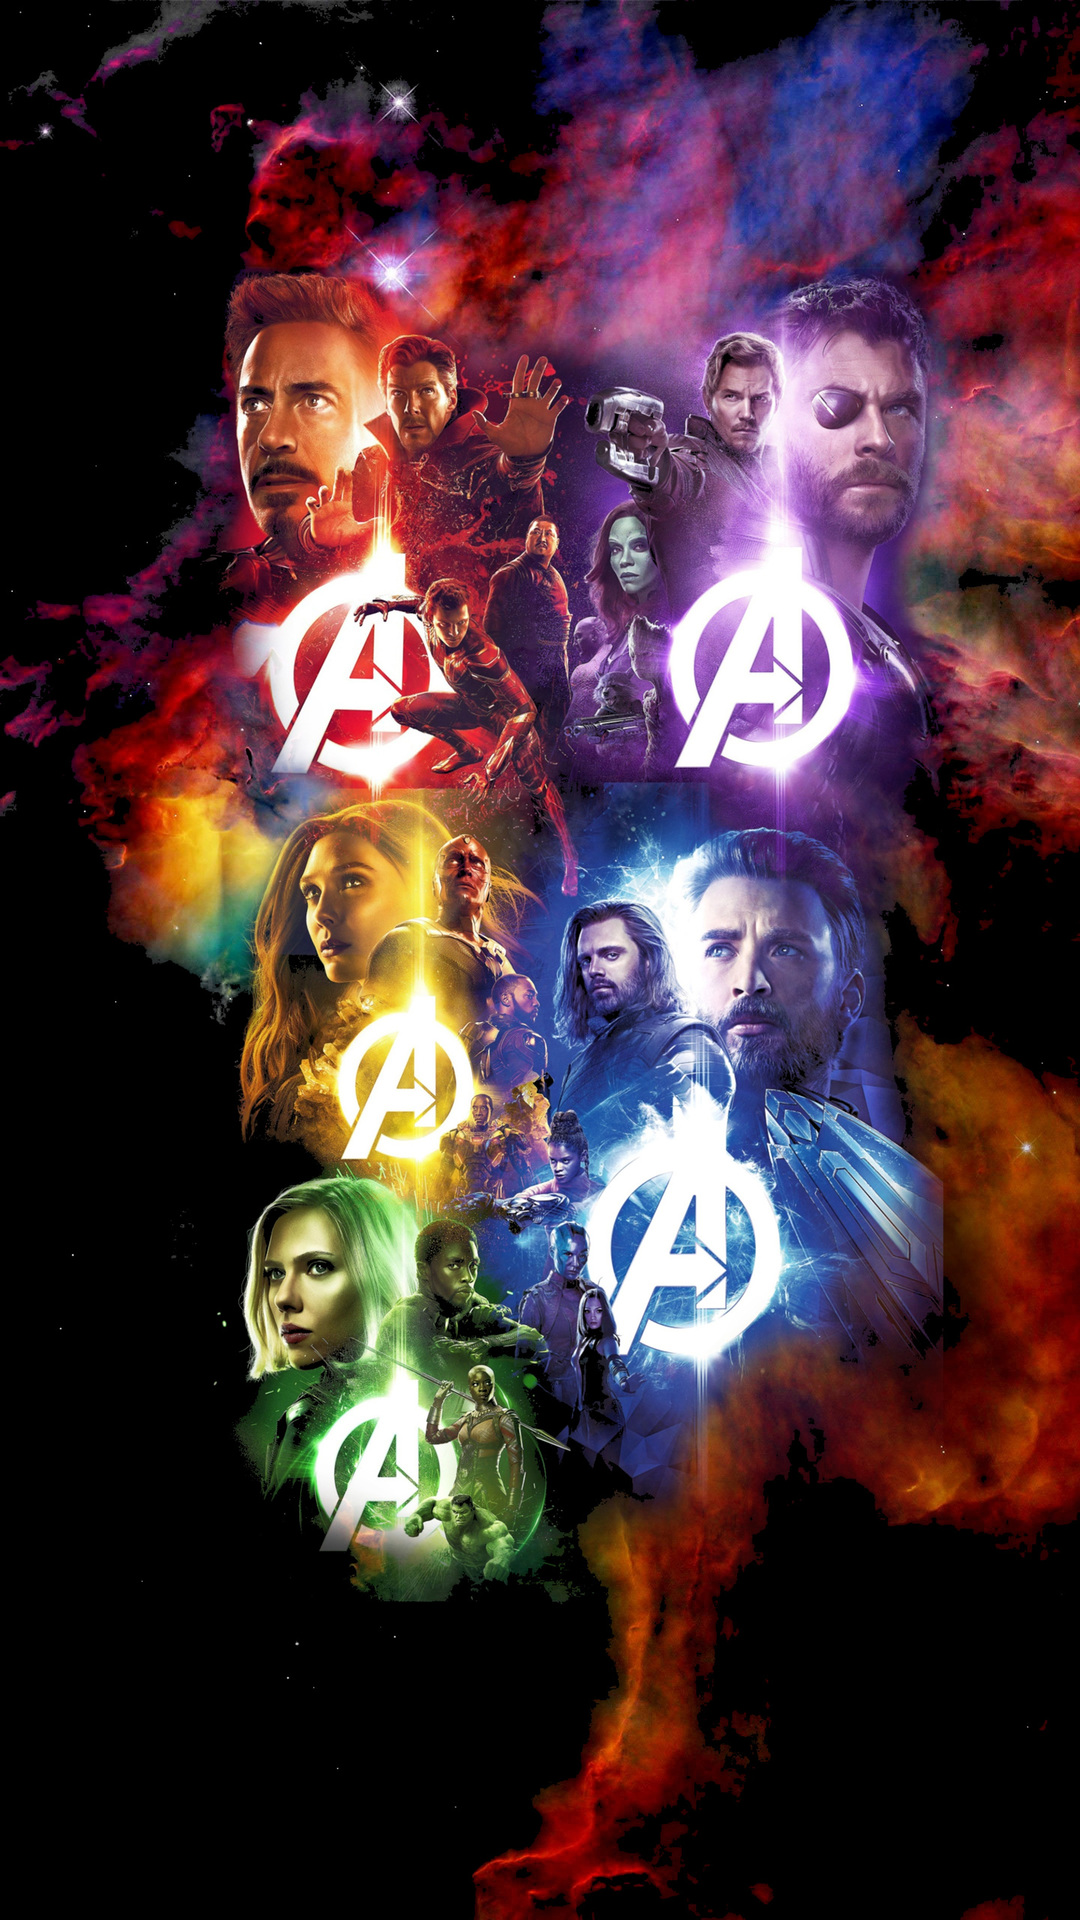 avengers-infinity-war-movie-2018-7q.jpg